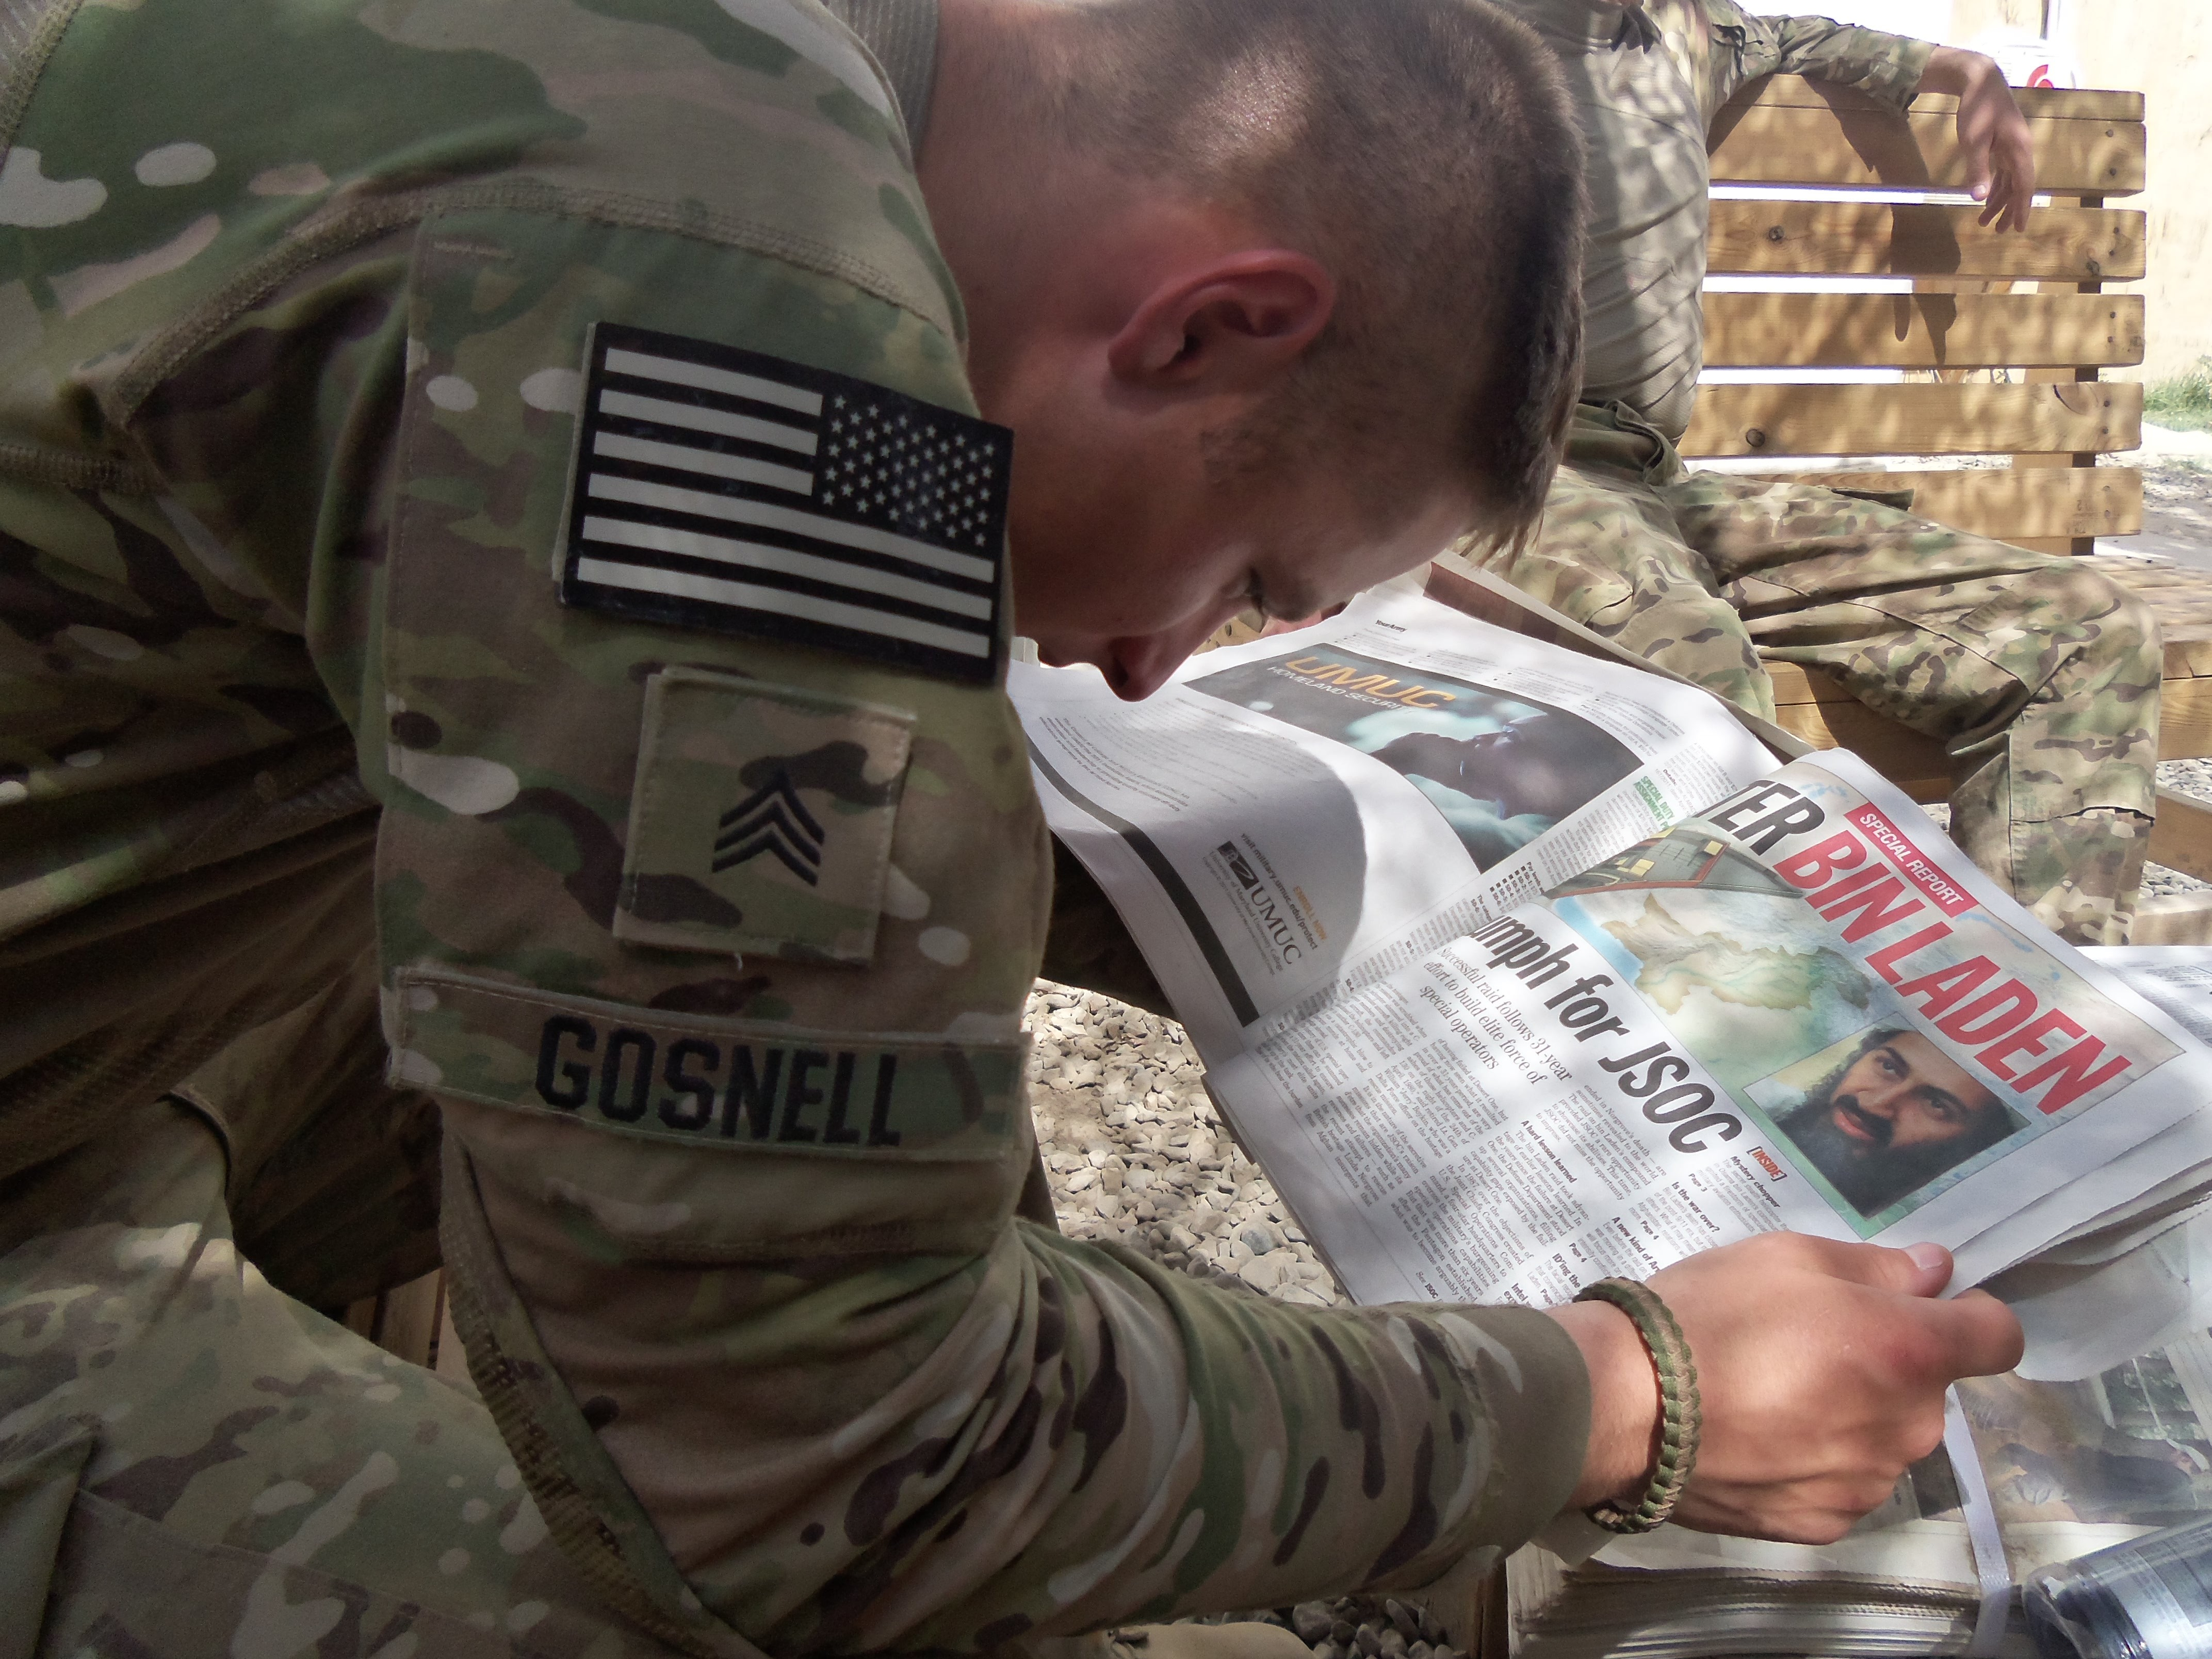 Caption: A soldier in Logar Province, Afghanistan reads about the capture of Osama Bin Laden in a 2011 issue of the Stars and Stripes., Credit: Christopher Hall / Georgia National Guard